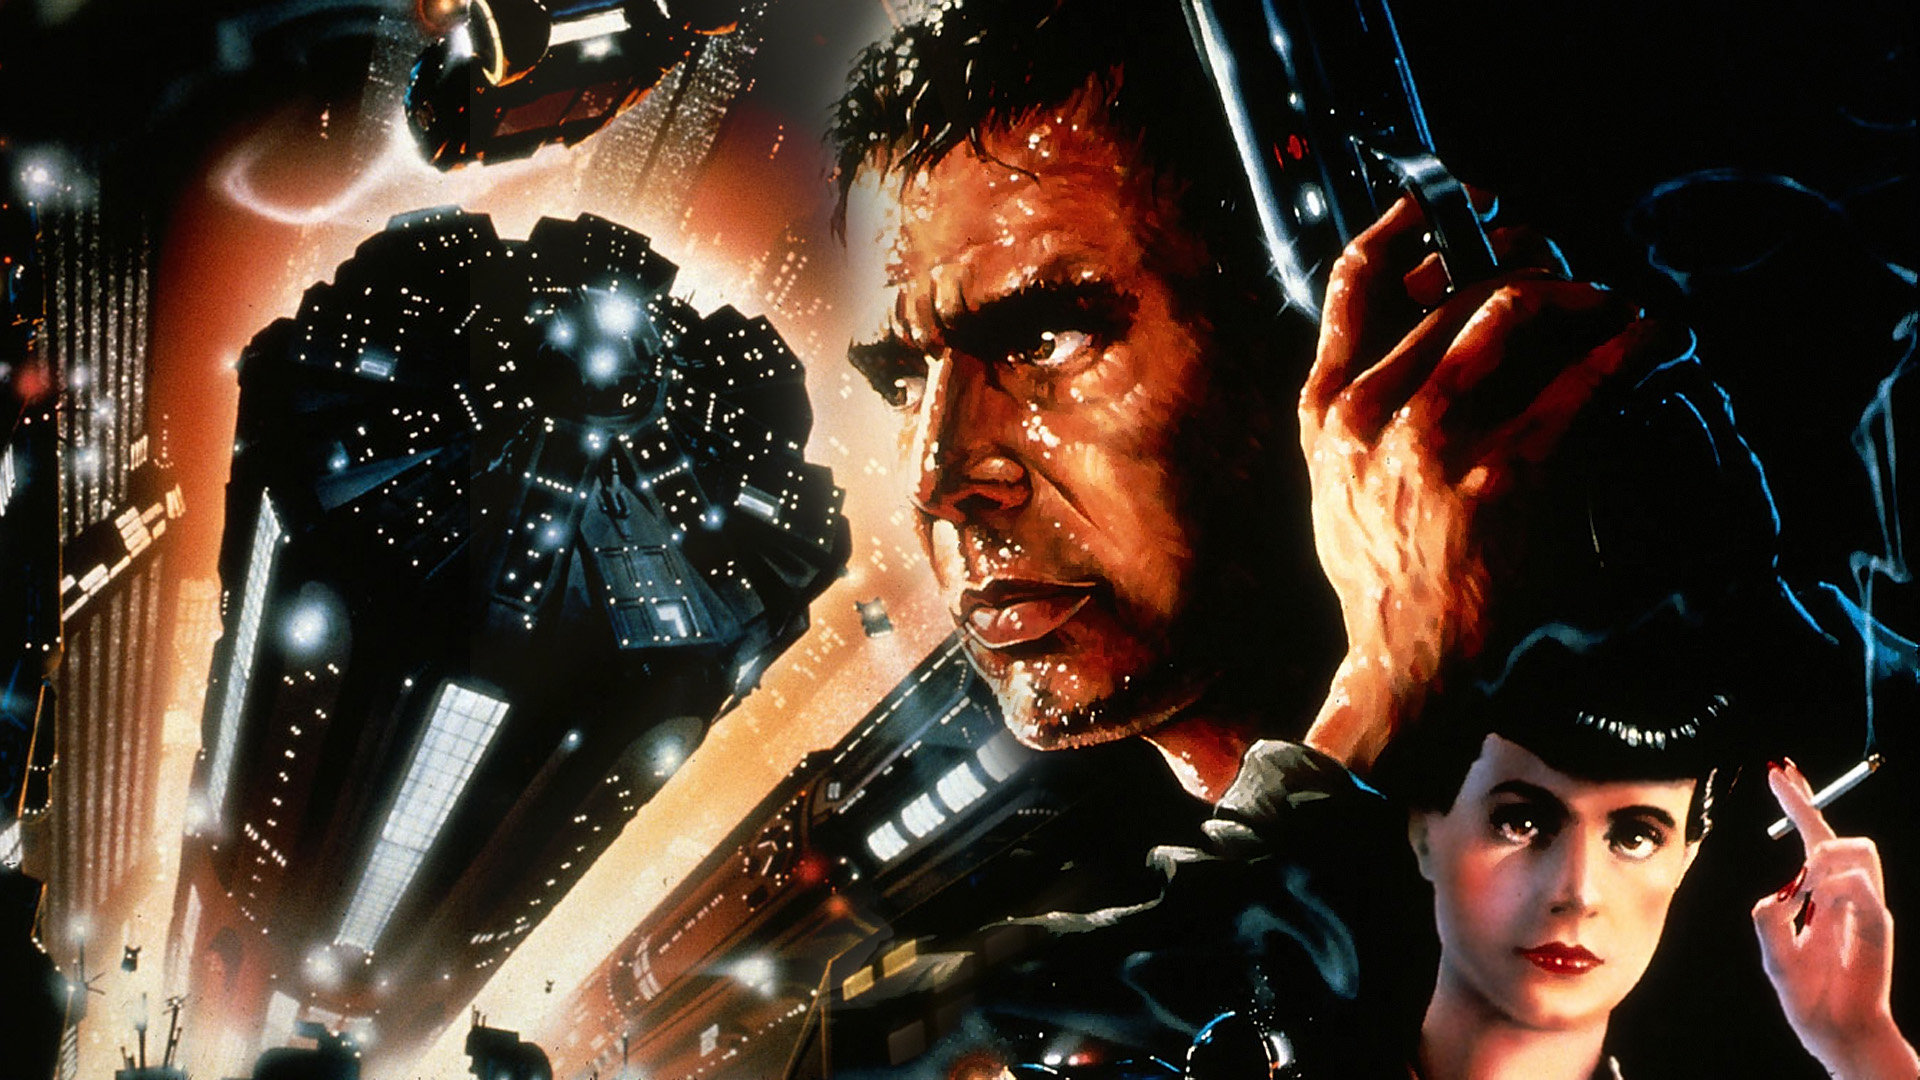 The 1982 American sci-fi classic Blade Runner will be screened in Krakow this Thursday